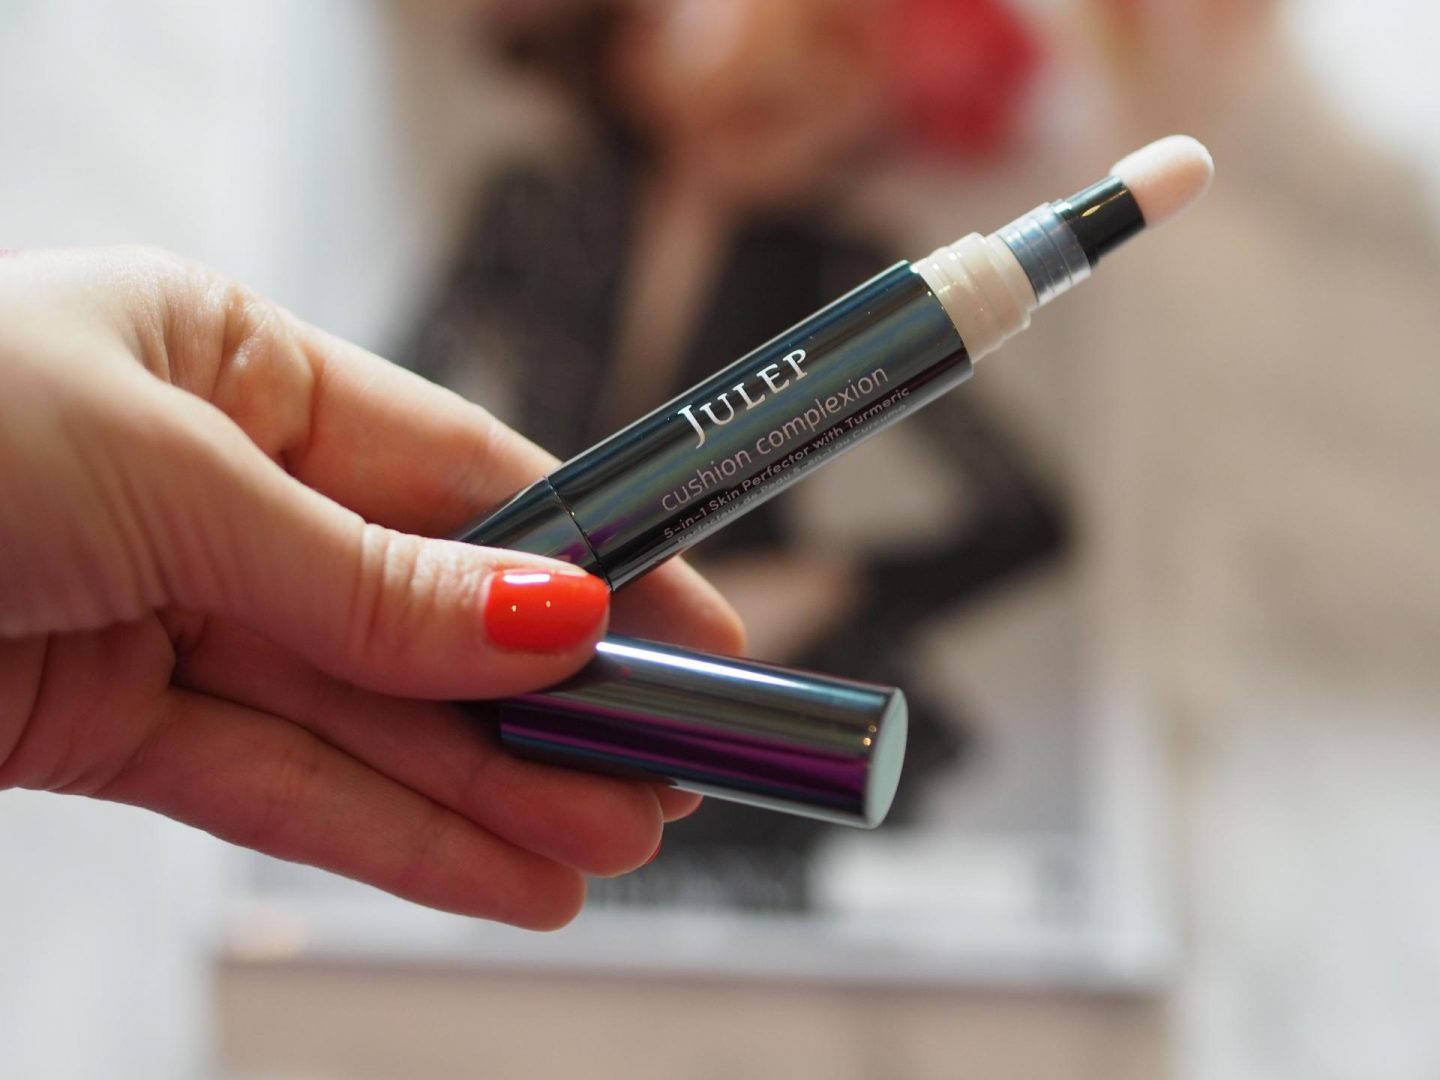 Julep 5-in-1 Skin Perfecter with Turmeric